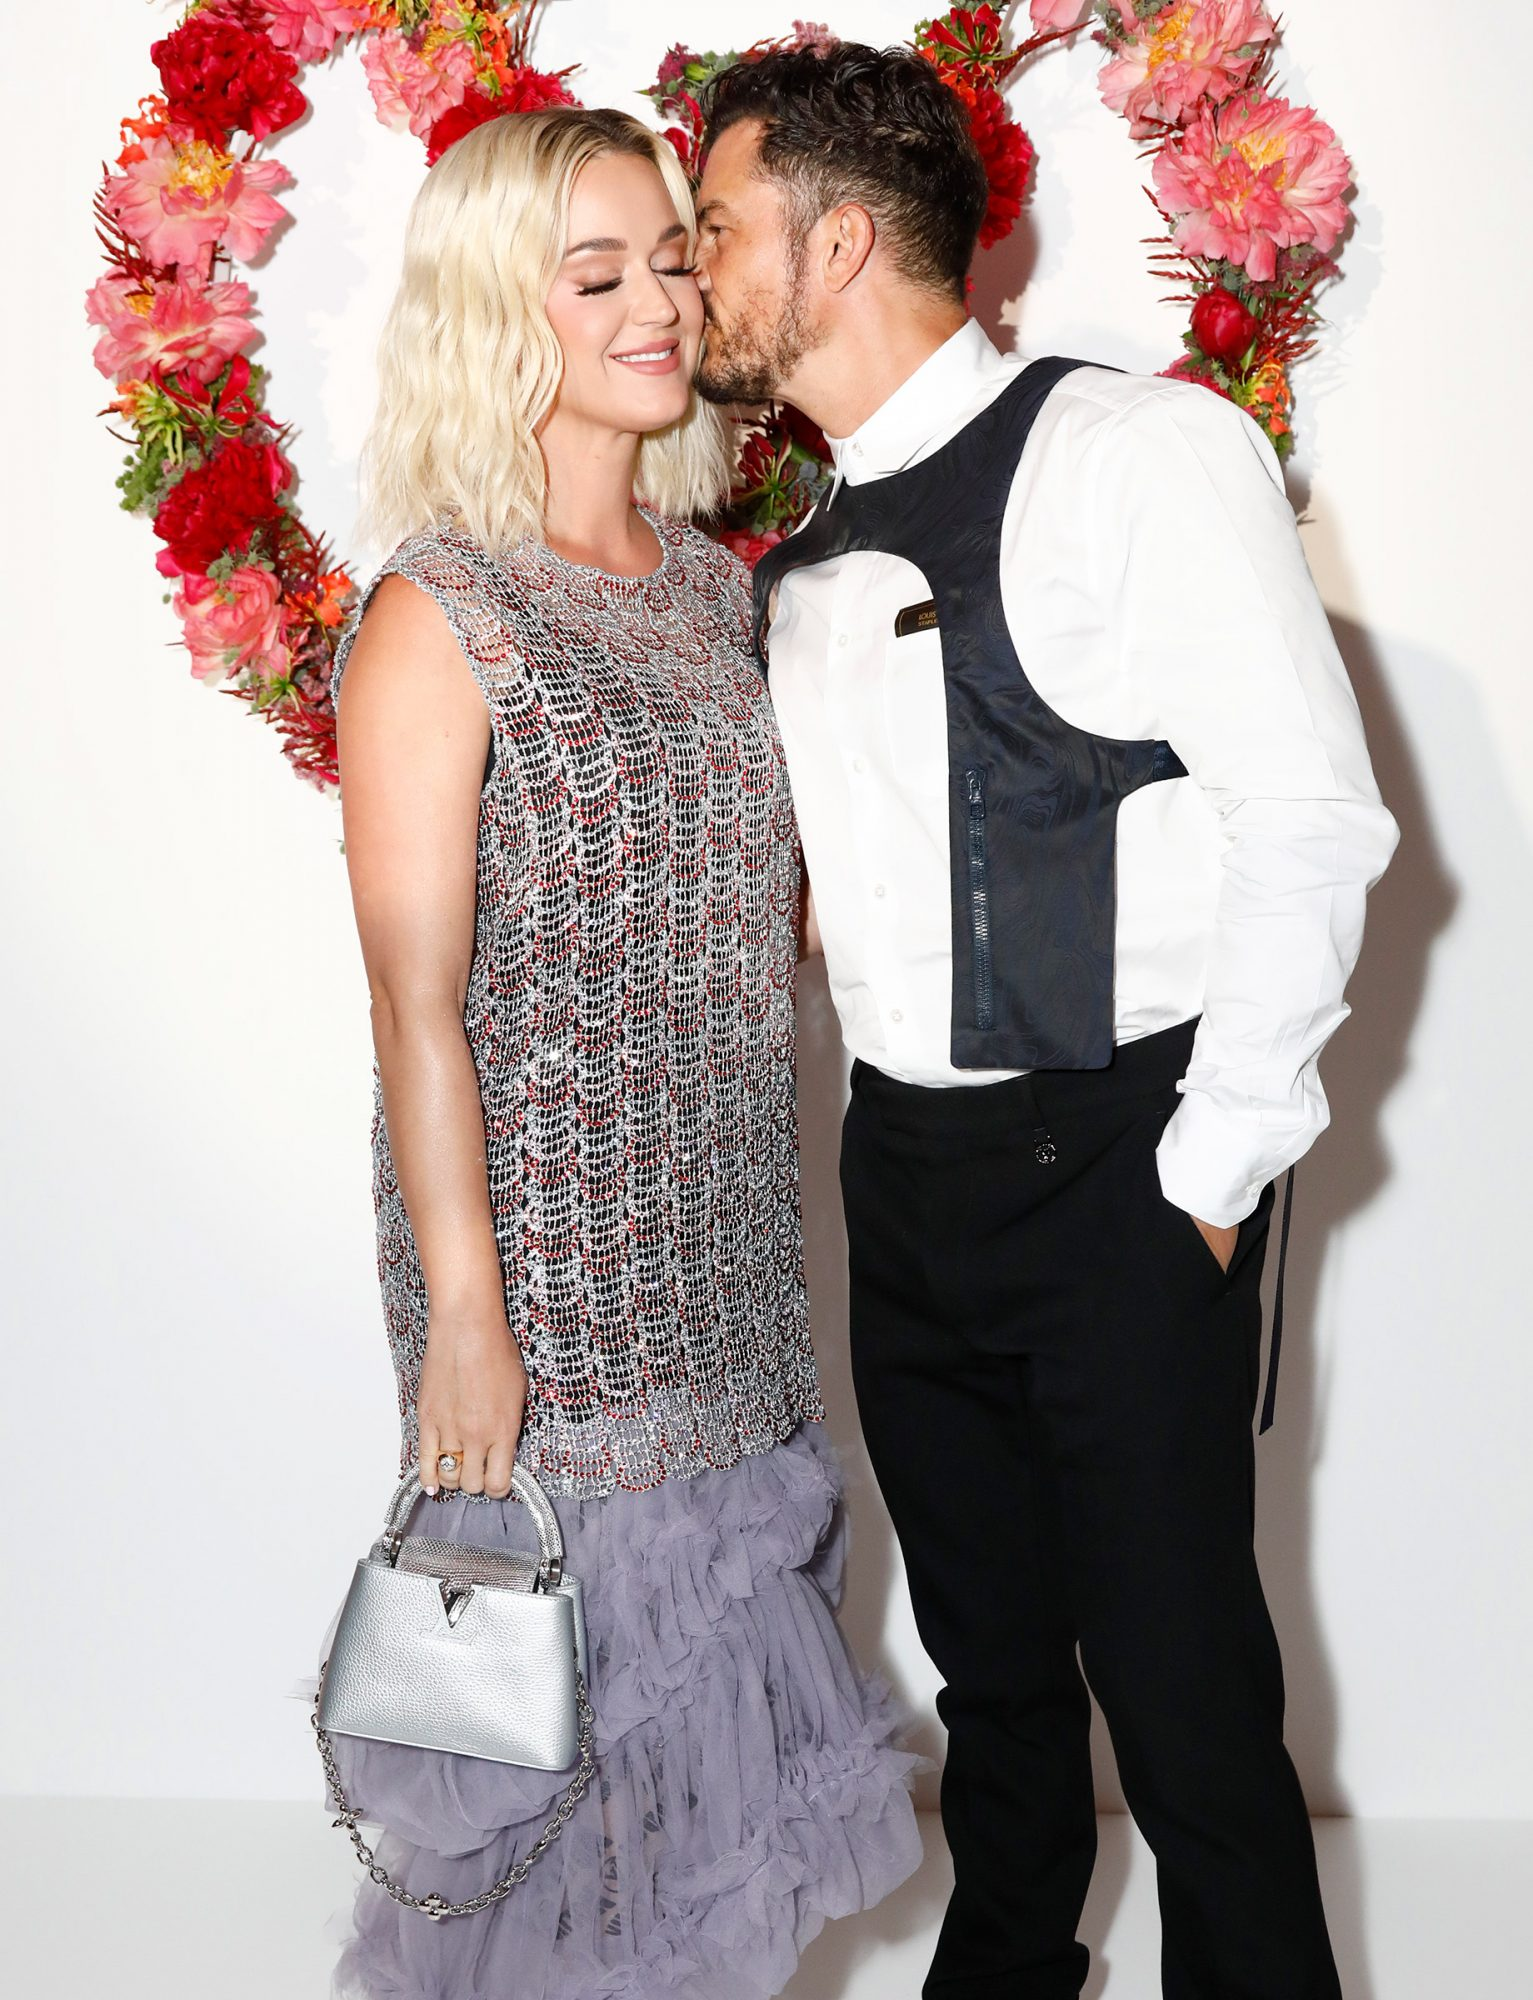 Katy Perry and Orlando Bloom attend the Louis Vuitton Parfum Dinner at Fondation Louis Vuitton at Fondation Louis Vuitton on July 05, 2021 in Paris, France